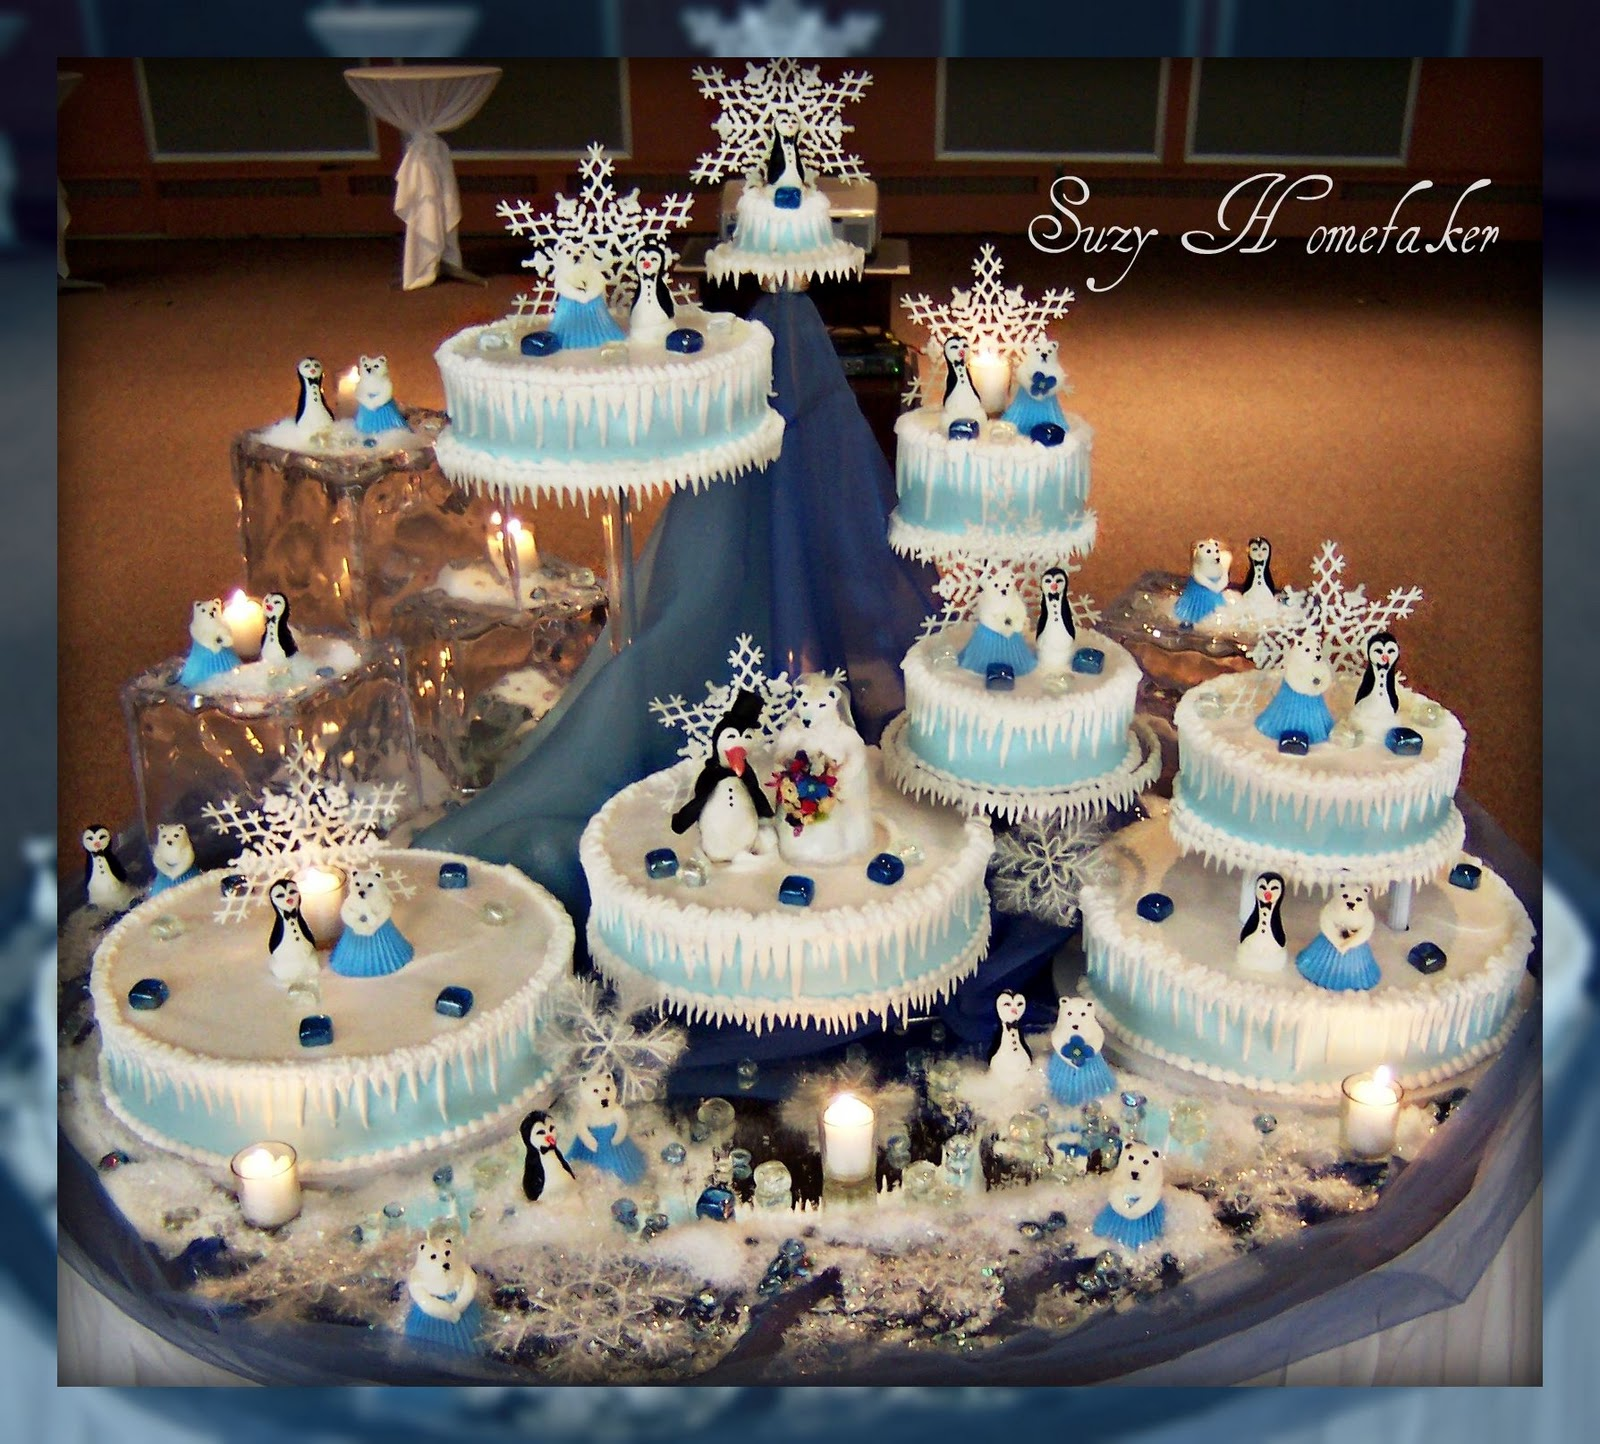 This Whole Cake Was Set Up On A Table Of Mirrors To Reflect The Candle Glow Large Acrylic Ice Cubes Anchor Es In Back Blue Tulle And Organza